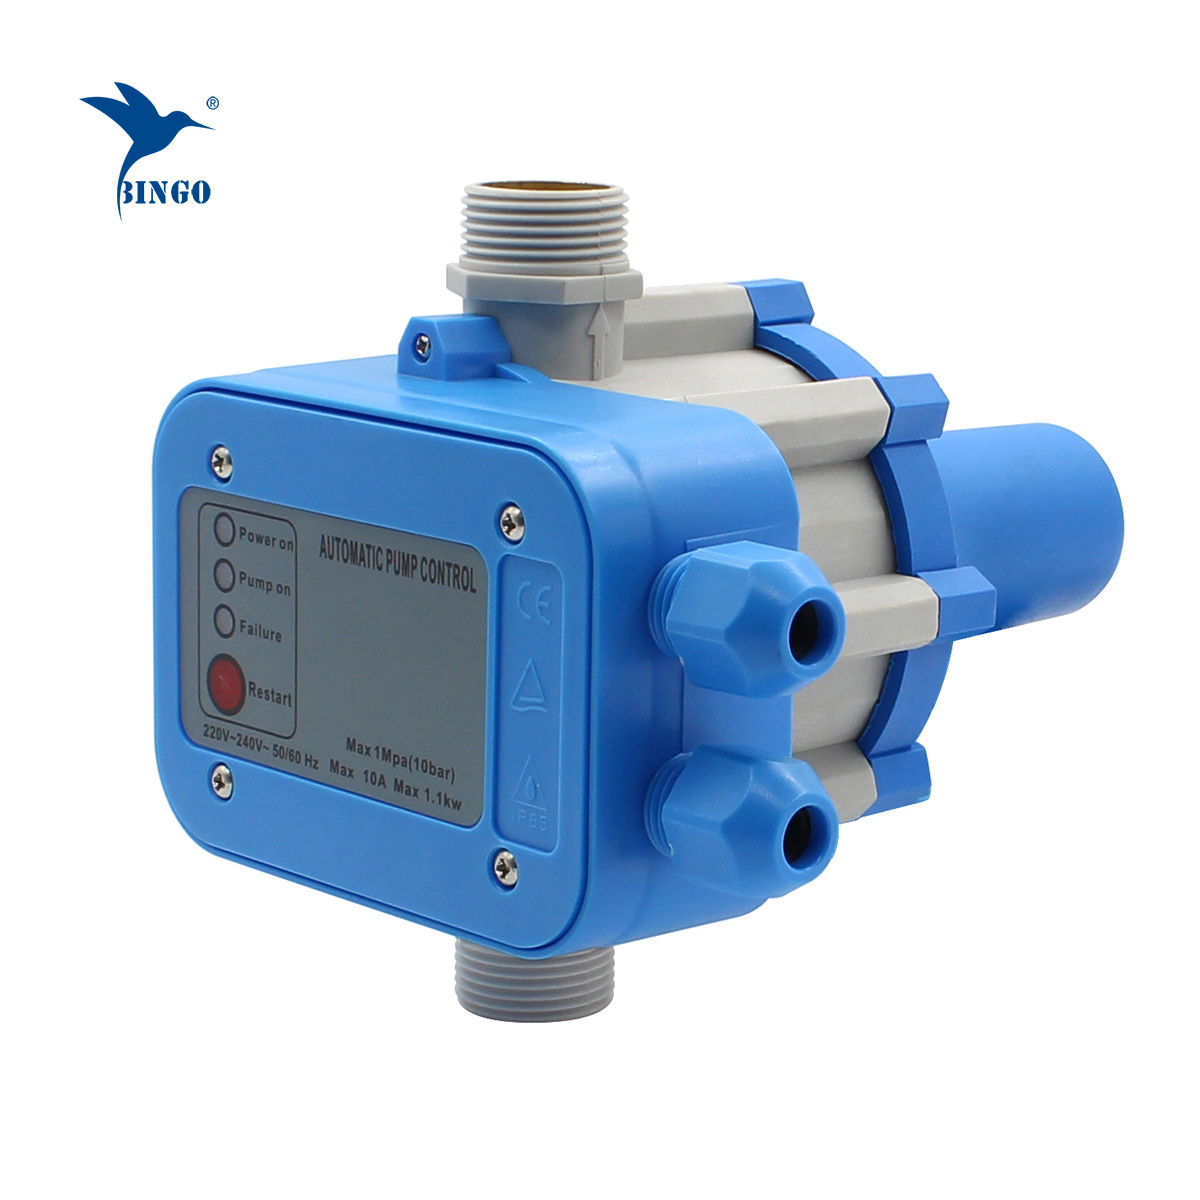 Automatic Electronic Switch Control Water Pump Pressure Controller 220V 10Bar